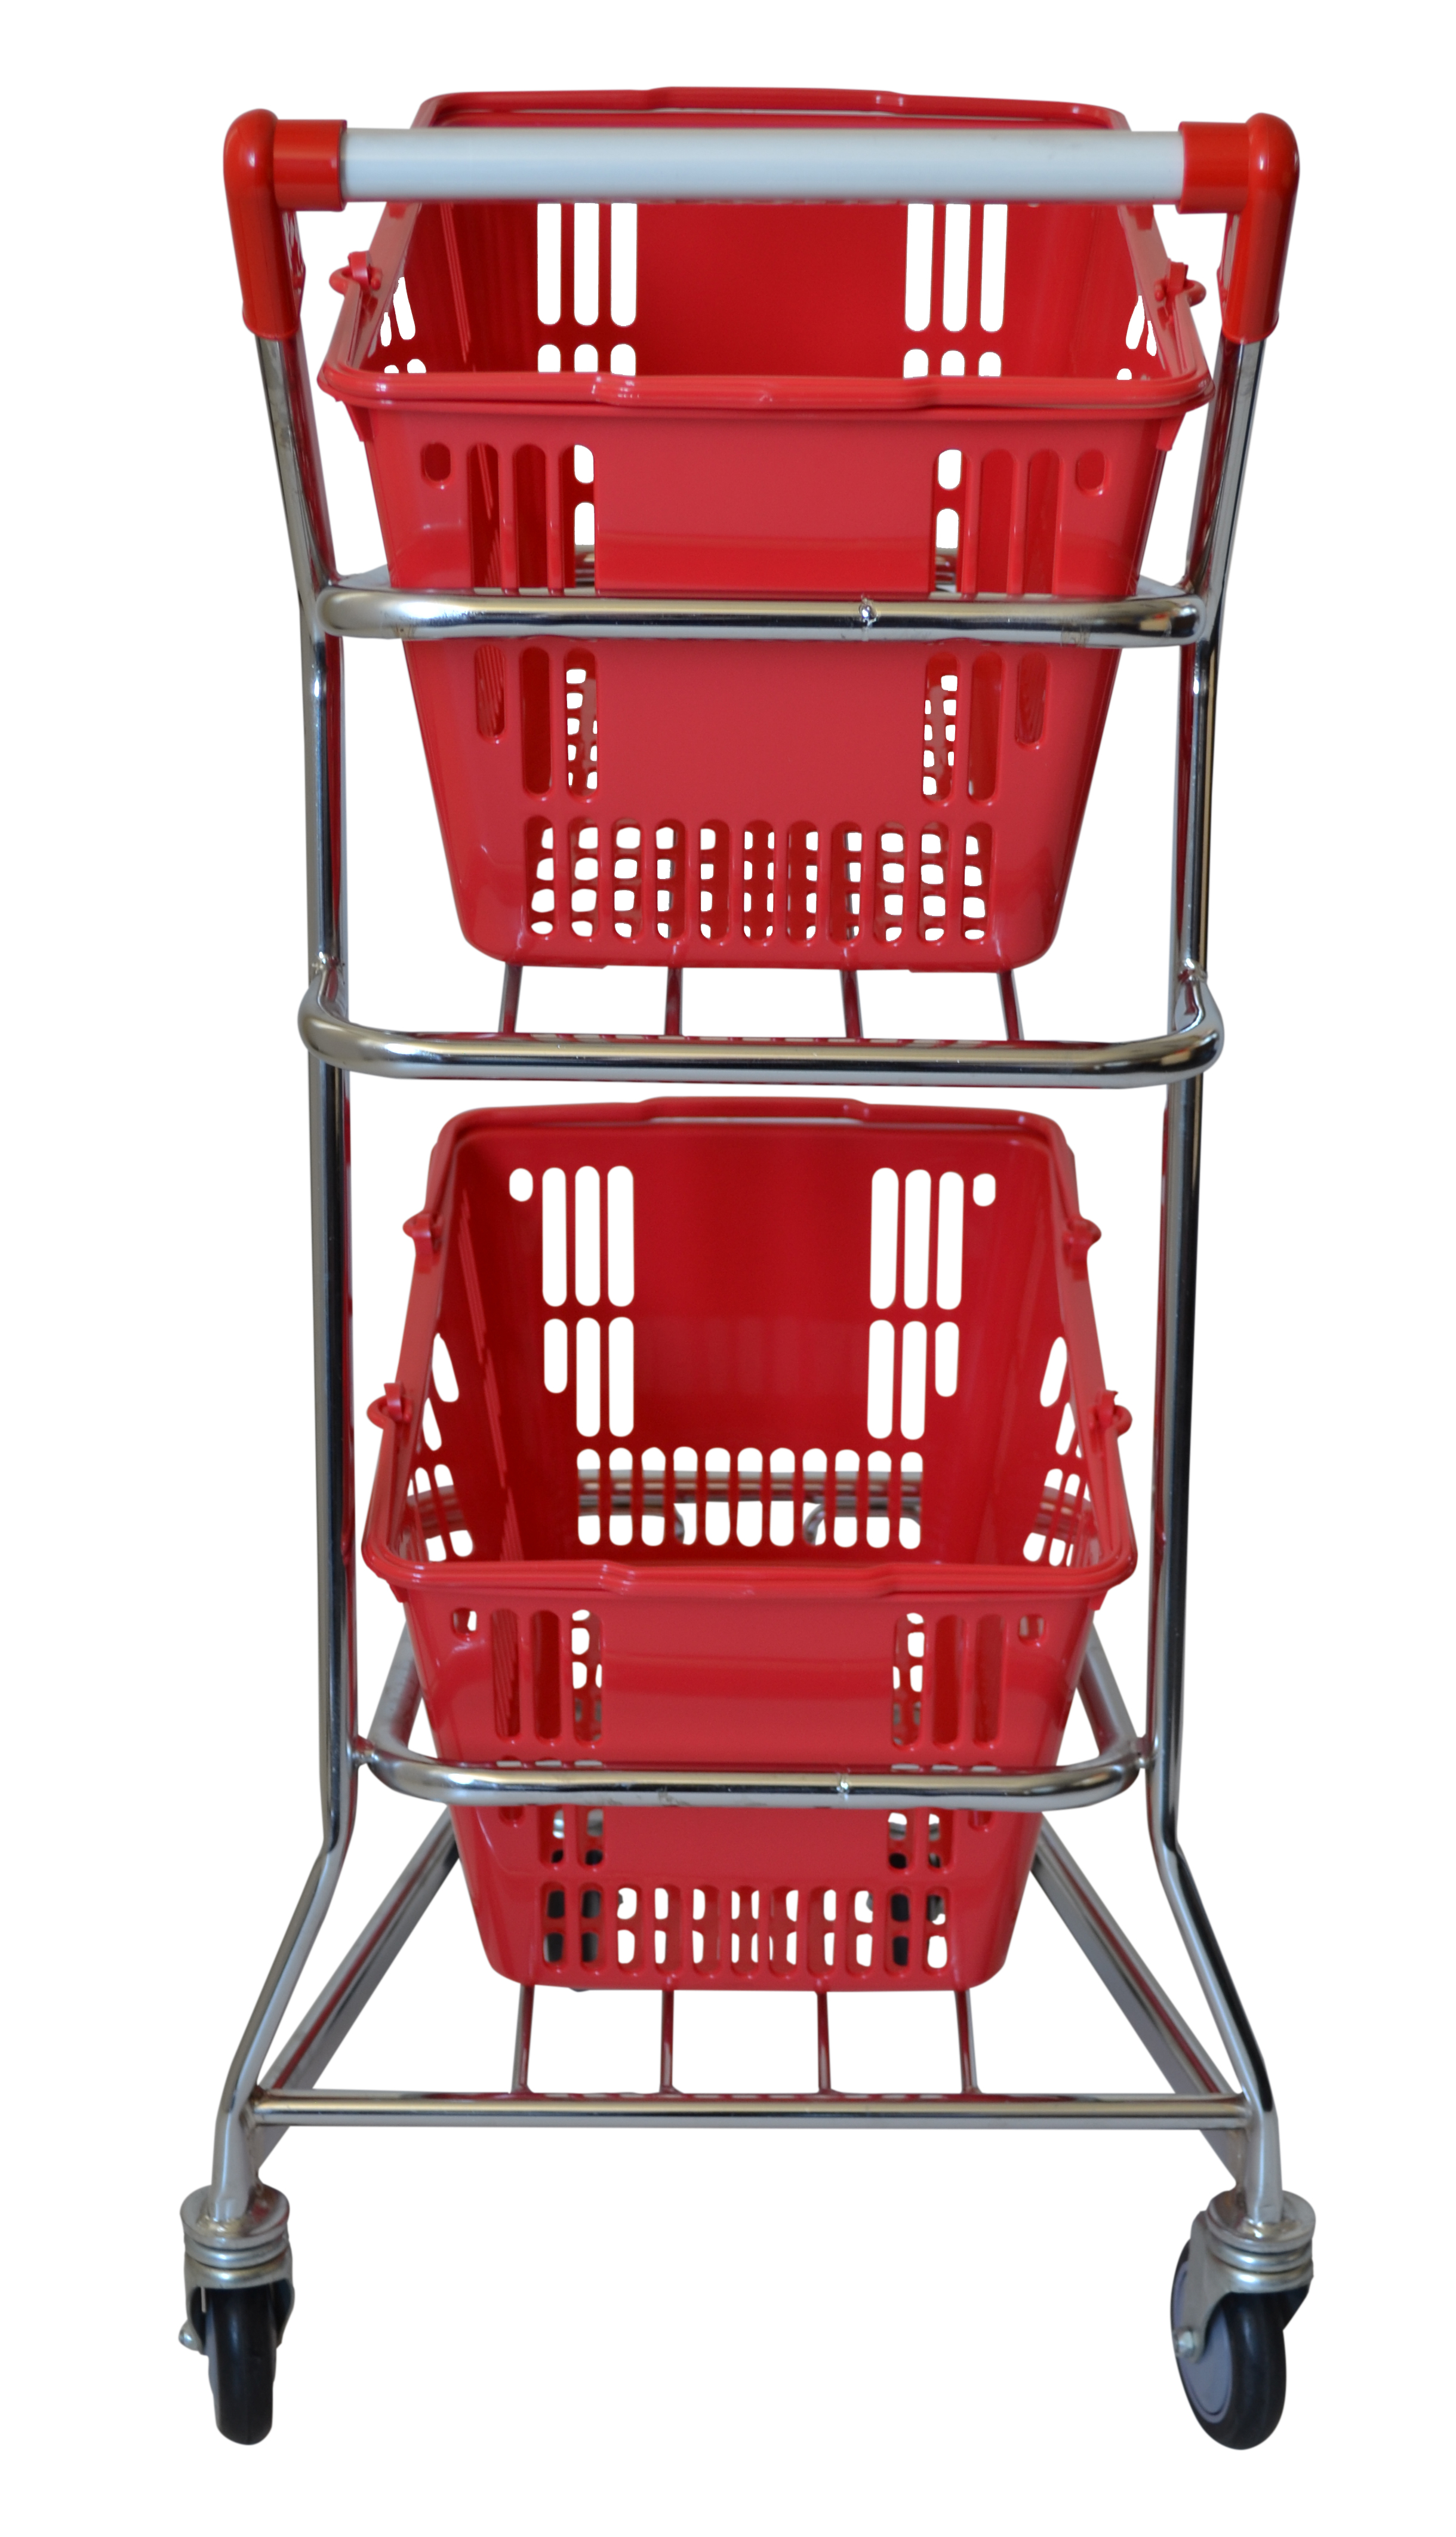 With 60 litre capacity, this 2 tiered shopping basket trolley is the perfect grocery trolley for small size supermarkets & convenience stores. It holds 2 x shopping baskets & is easily manouverable around narrow ailes. On sale now!